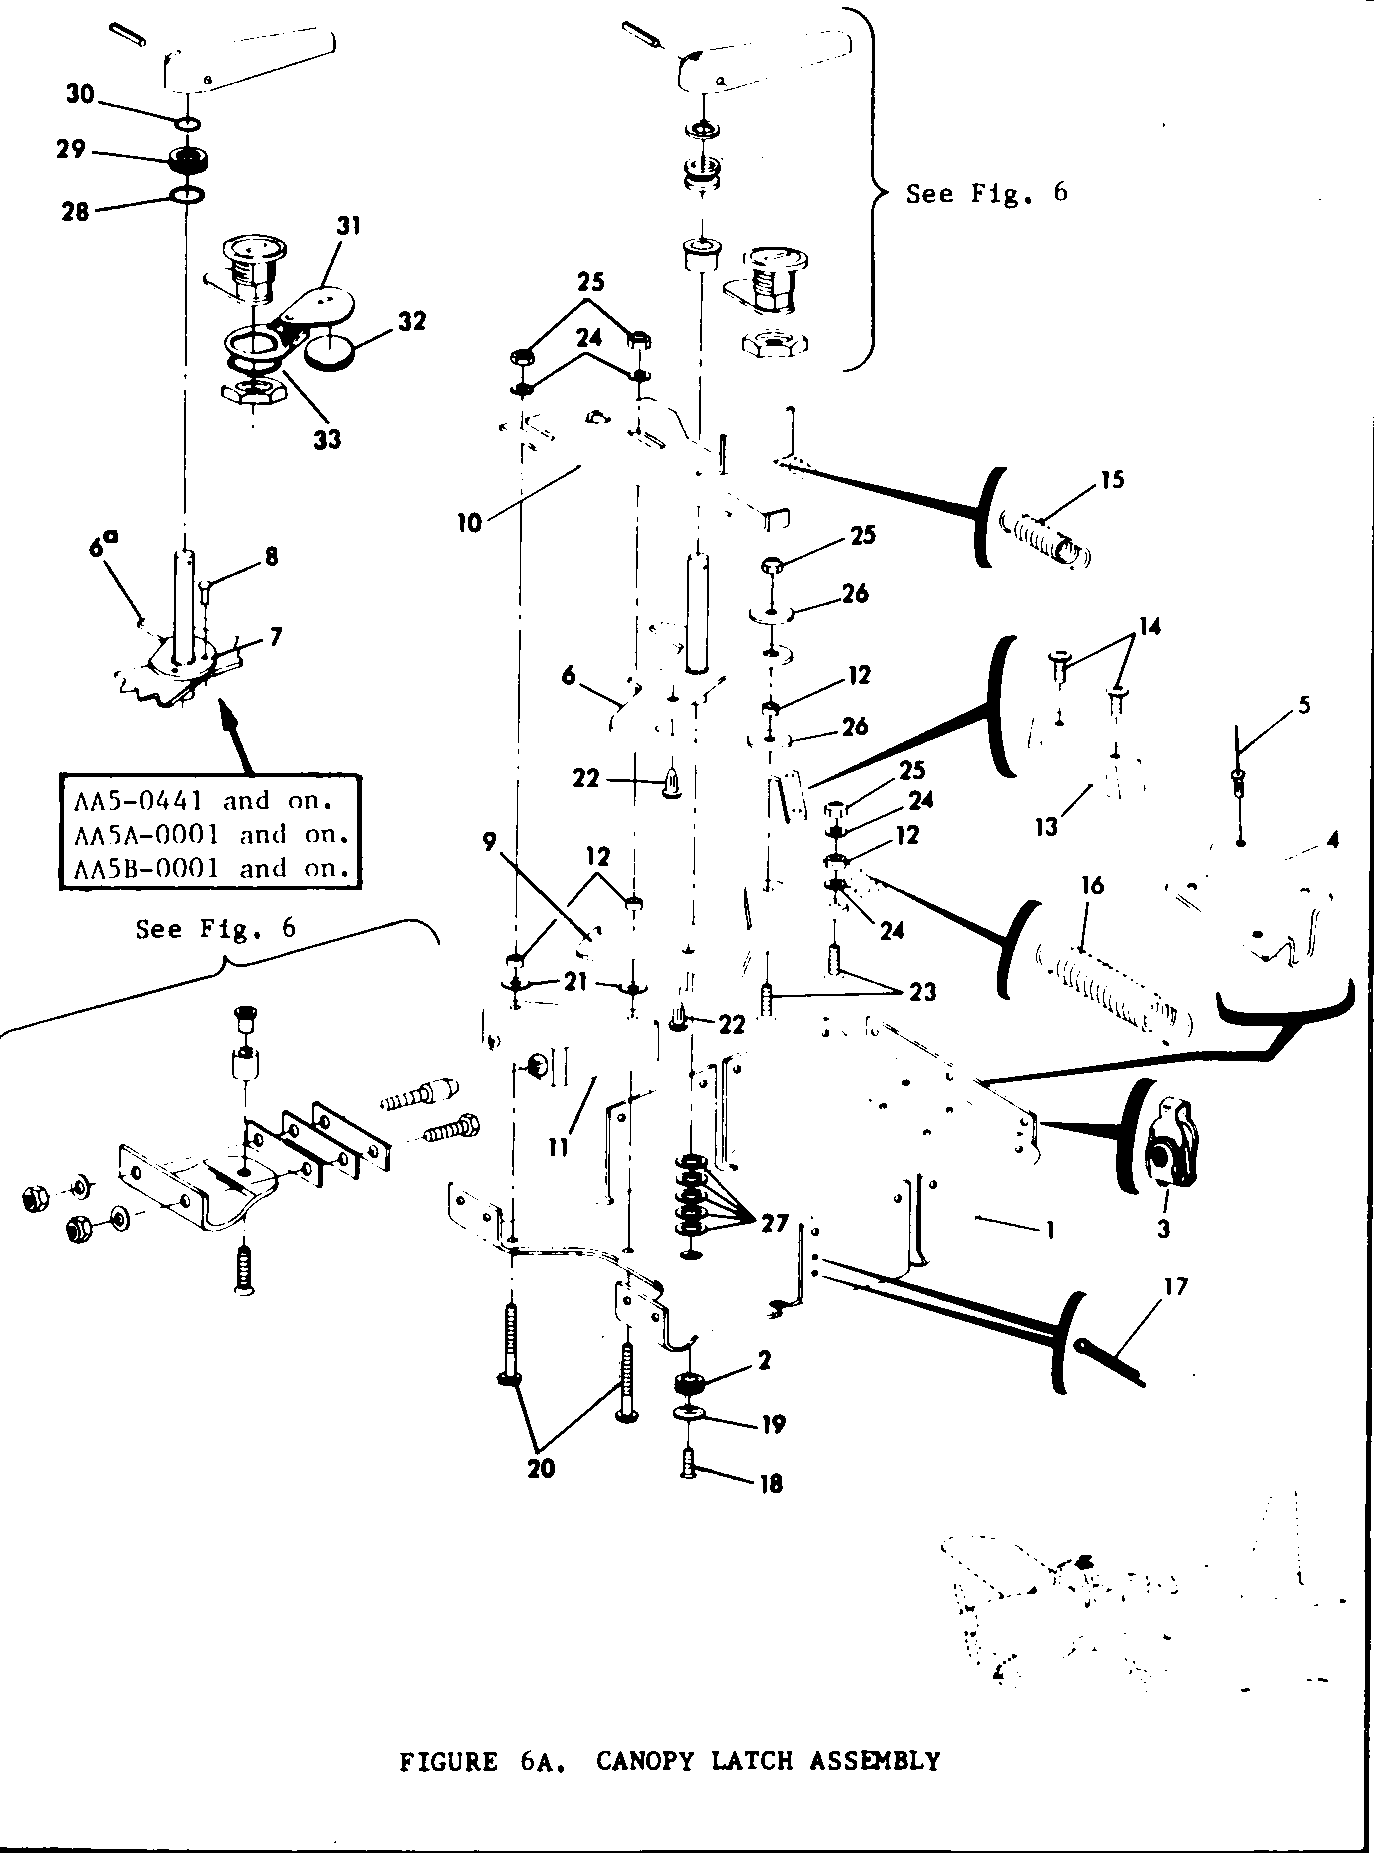 Parts Diagram Figure 6a Canopy Latch Assembly